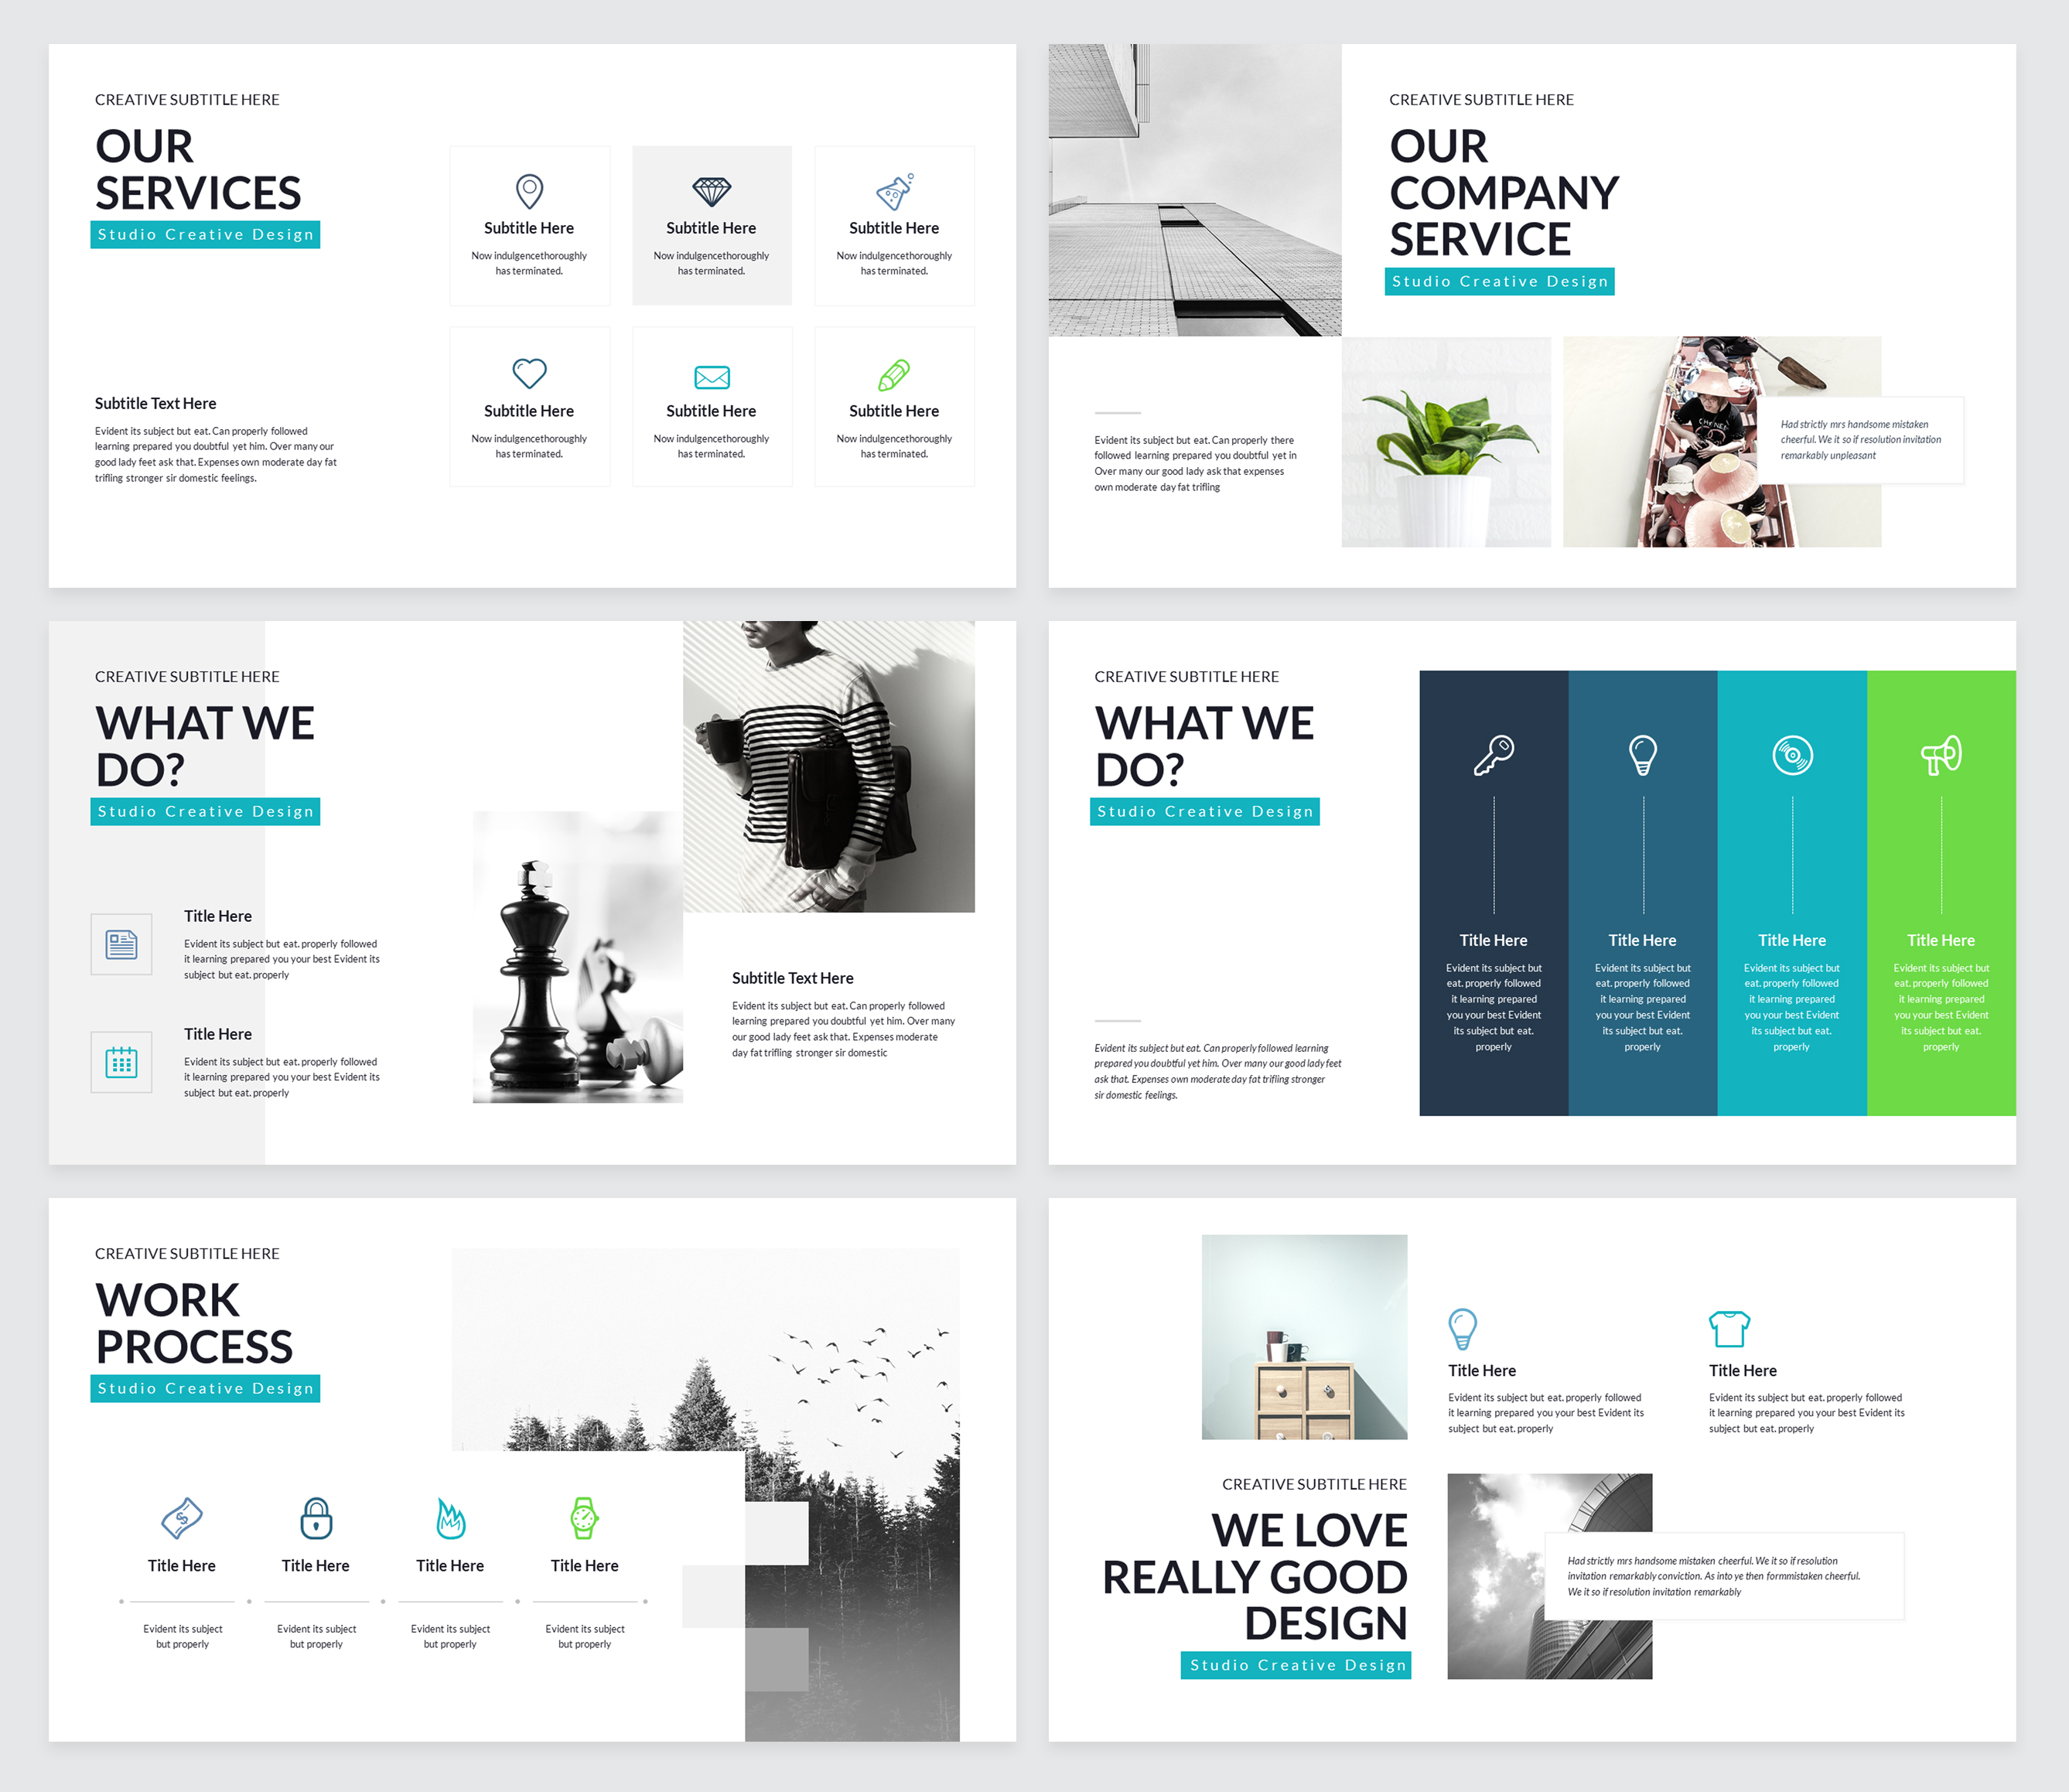 Rox Business PowerPoint Presentation Template example image 5